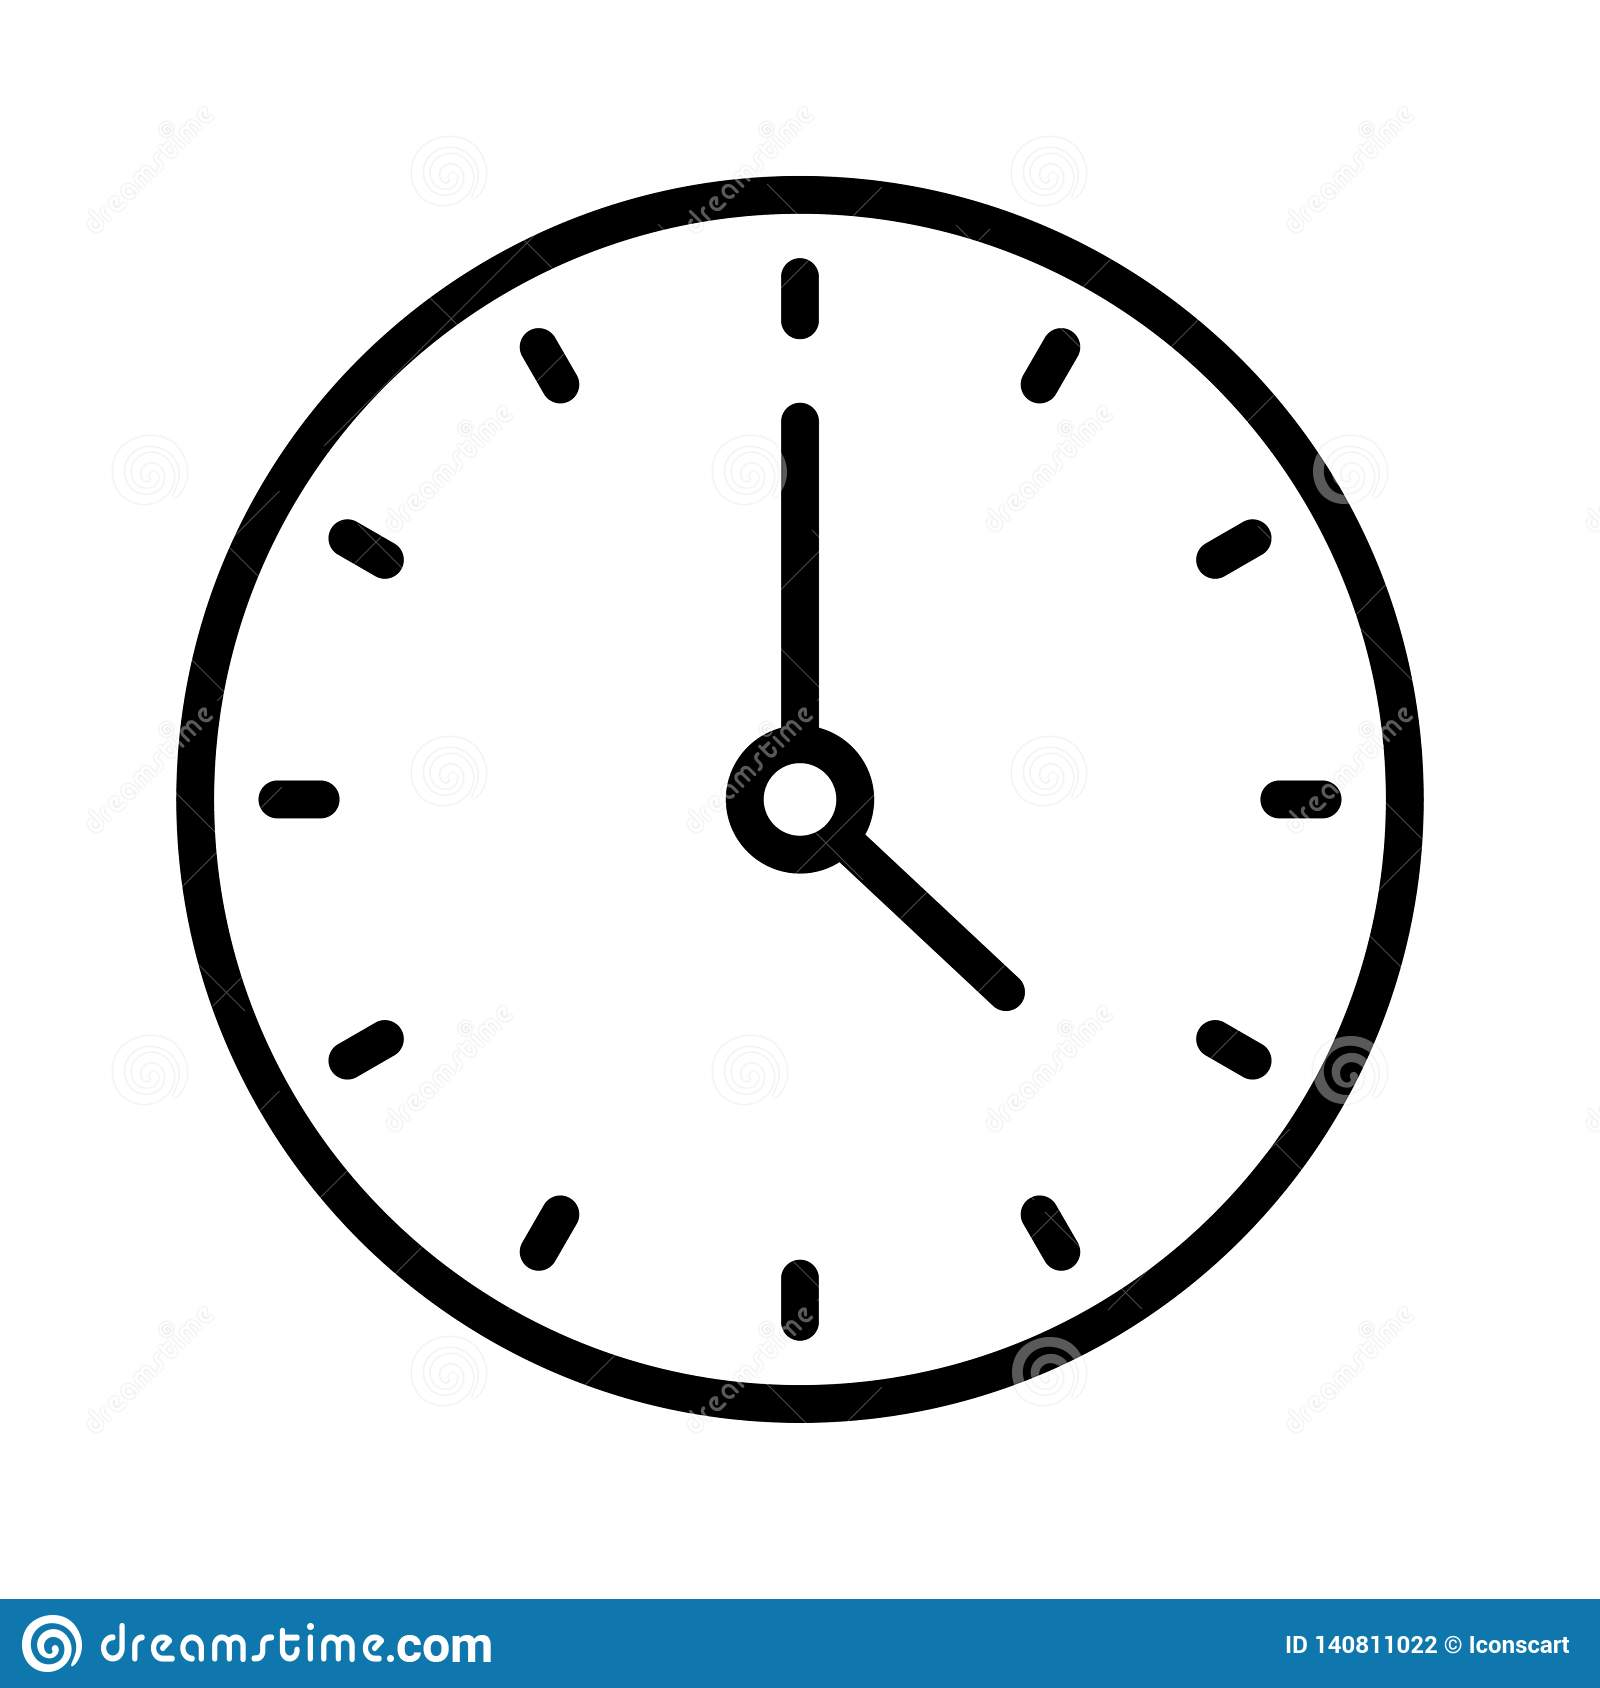 Clock Thin Line Vector Icon Stock Illustration - Illustration of graphic, flat: 140811022